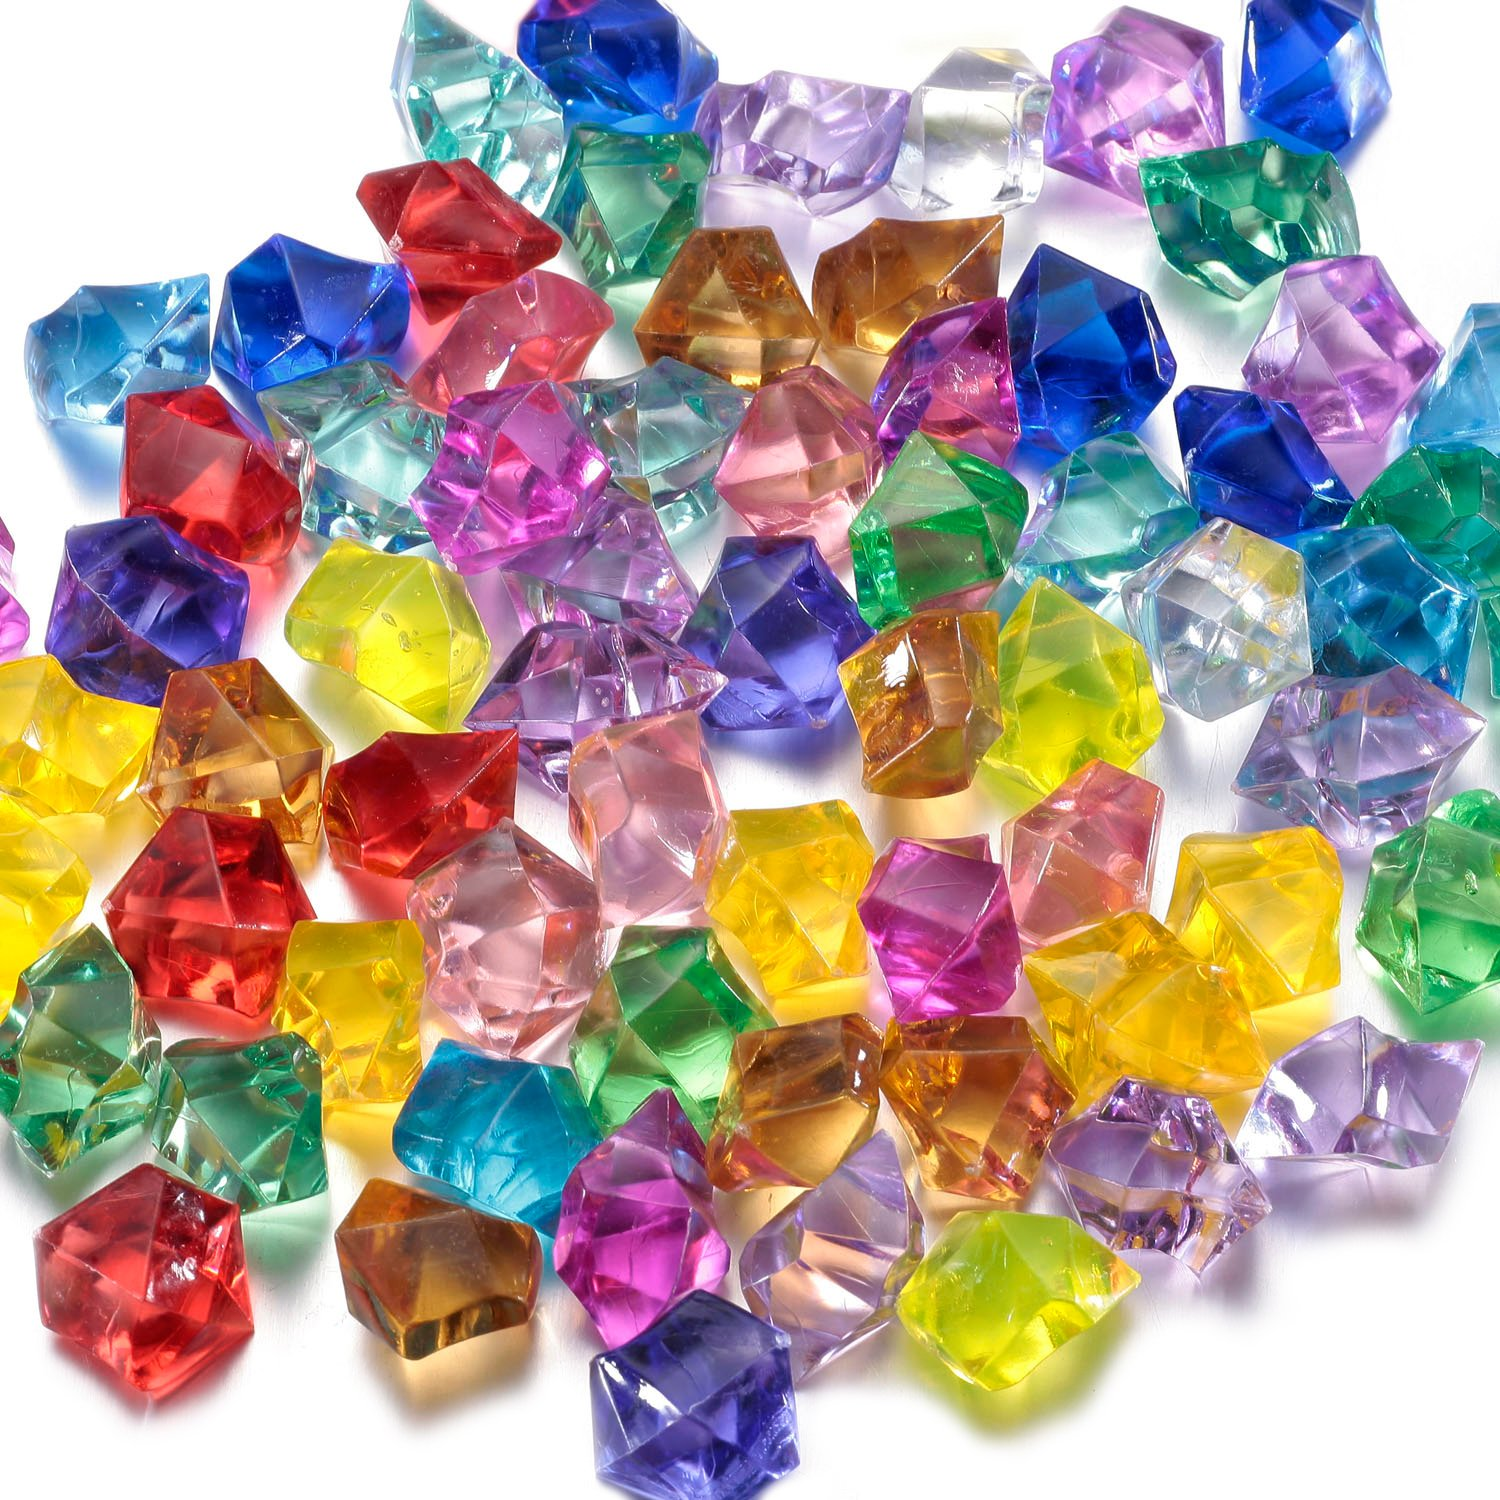 FunLavie Multi-Colored Acrylic Diamonds Pirate Treasure Jewels for Costume Stage Props/Party Decorations Supplies/Wedding Decorations and Vase Fillers-90 Pcs by Fun Lavie YJTX0219D-90